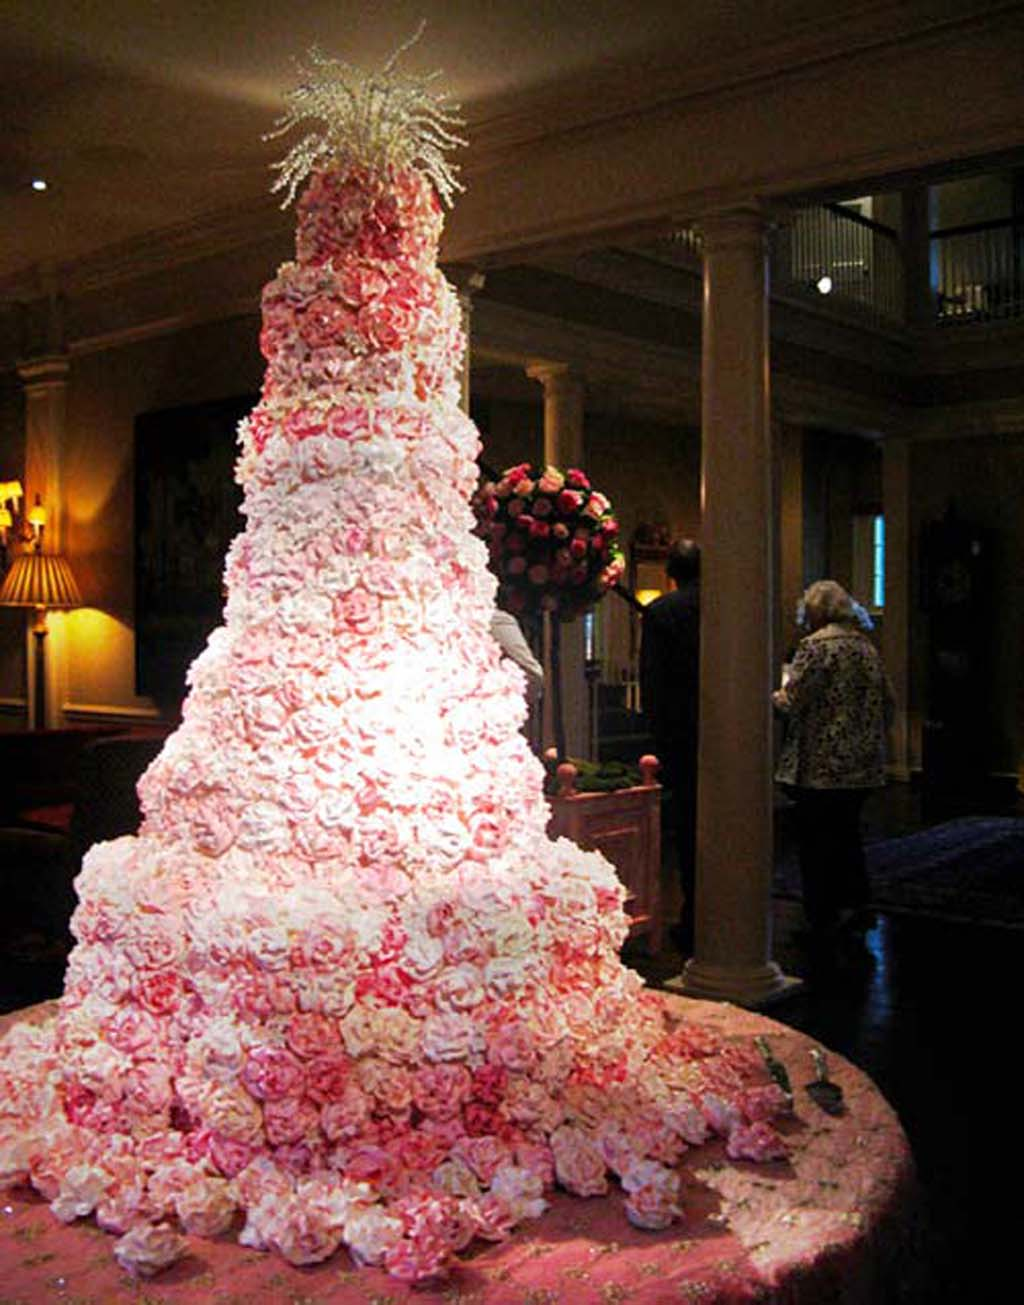 Big Wedding Cake Images : Best-wedding-cakes-ever-wallpaper-4-wedding-cakes-wedding